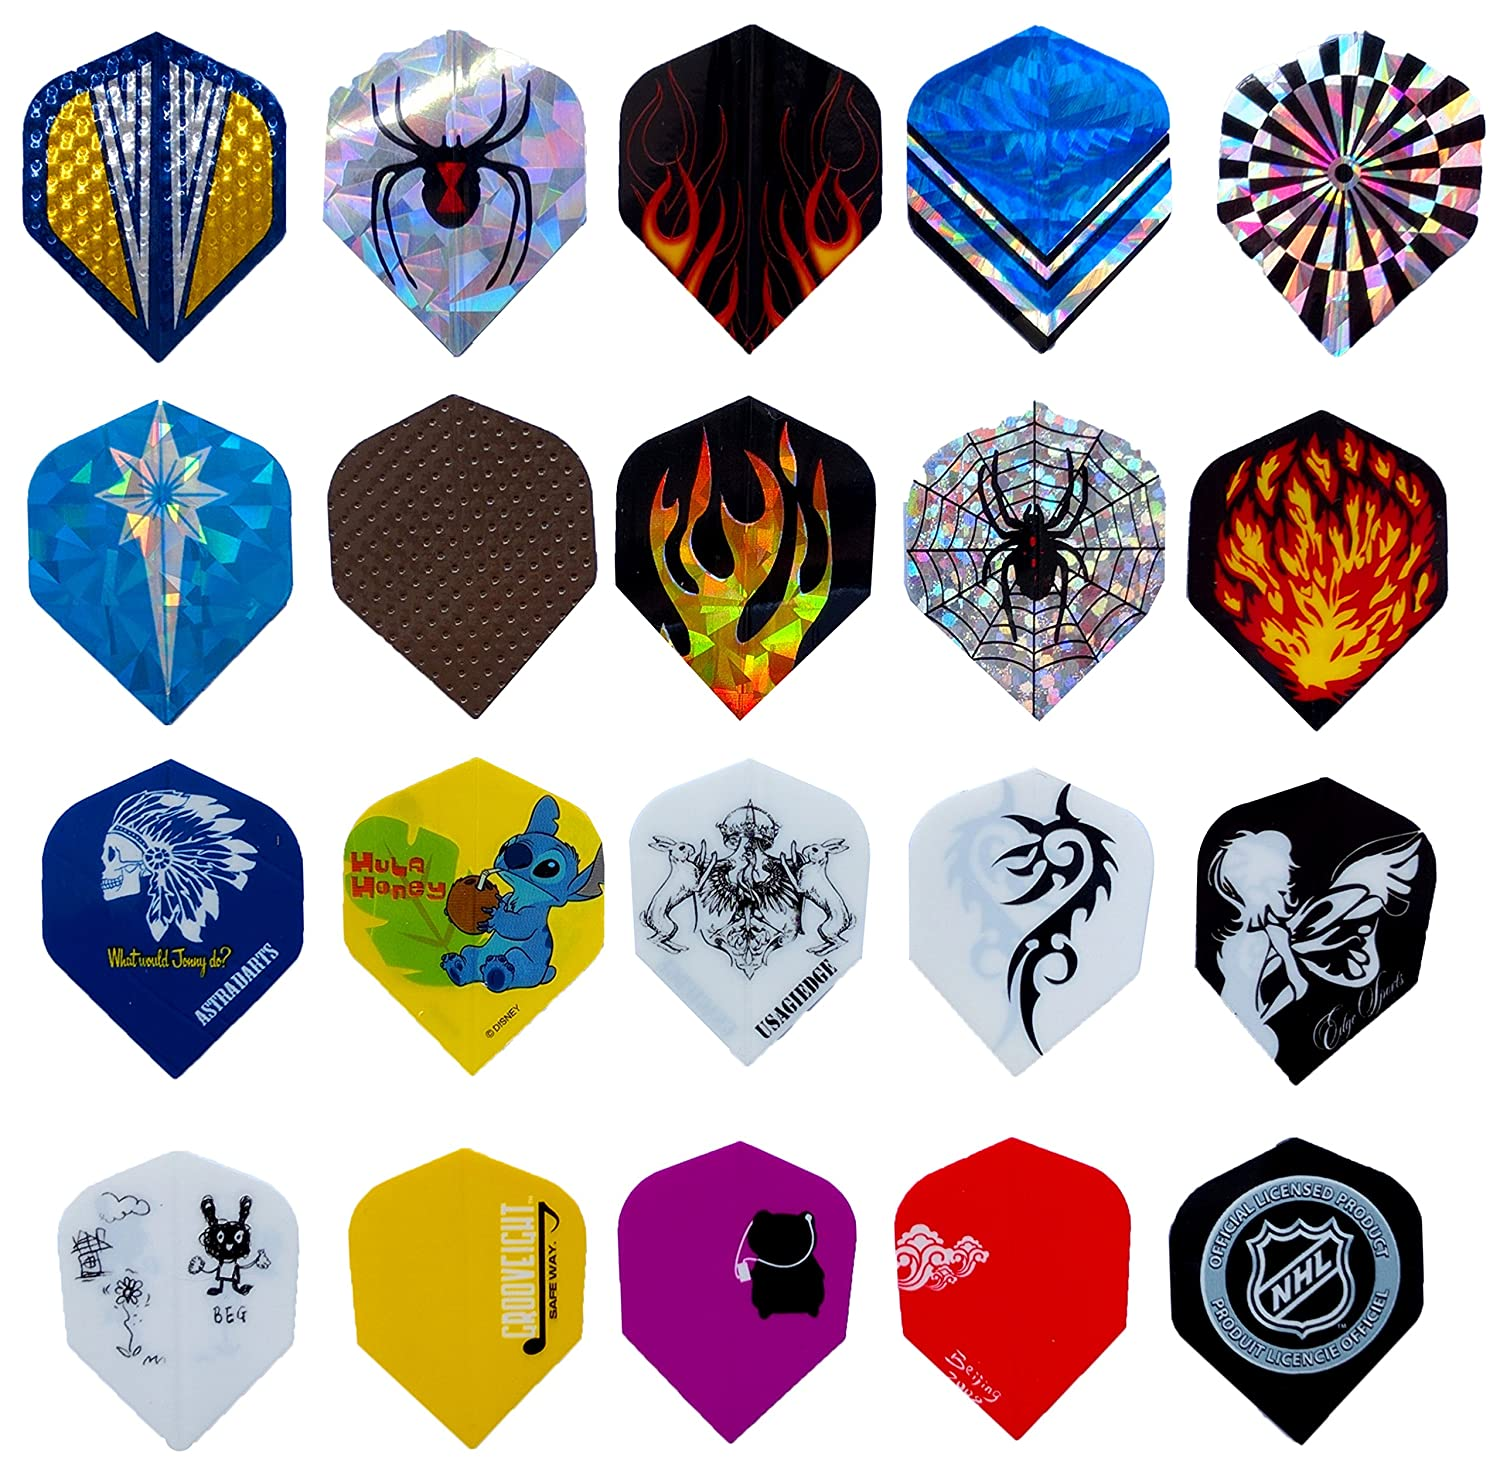 25 Sets/ 75 Pcs Wholesale Dart Flights Sets 2D And 3D Bling Extra Thick Long Life Laser Aluminium Darts Flights